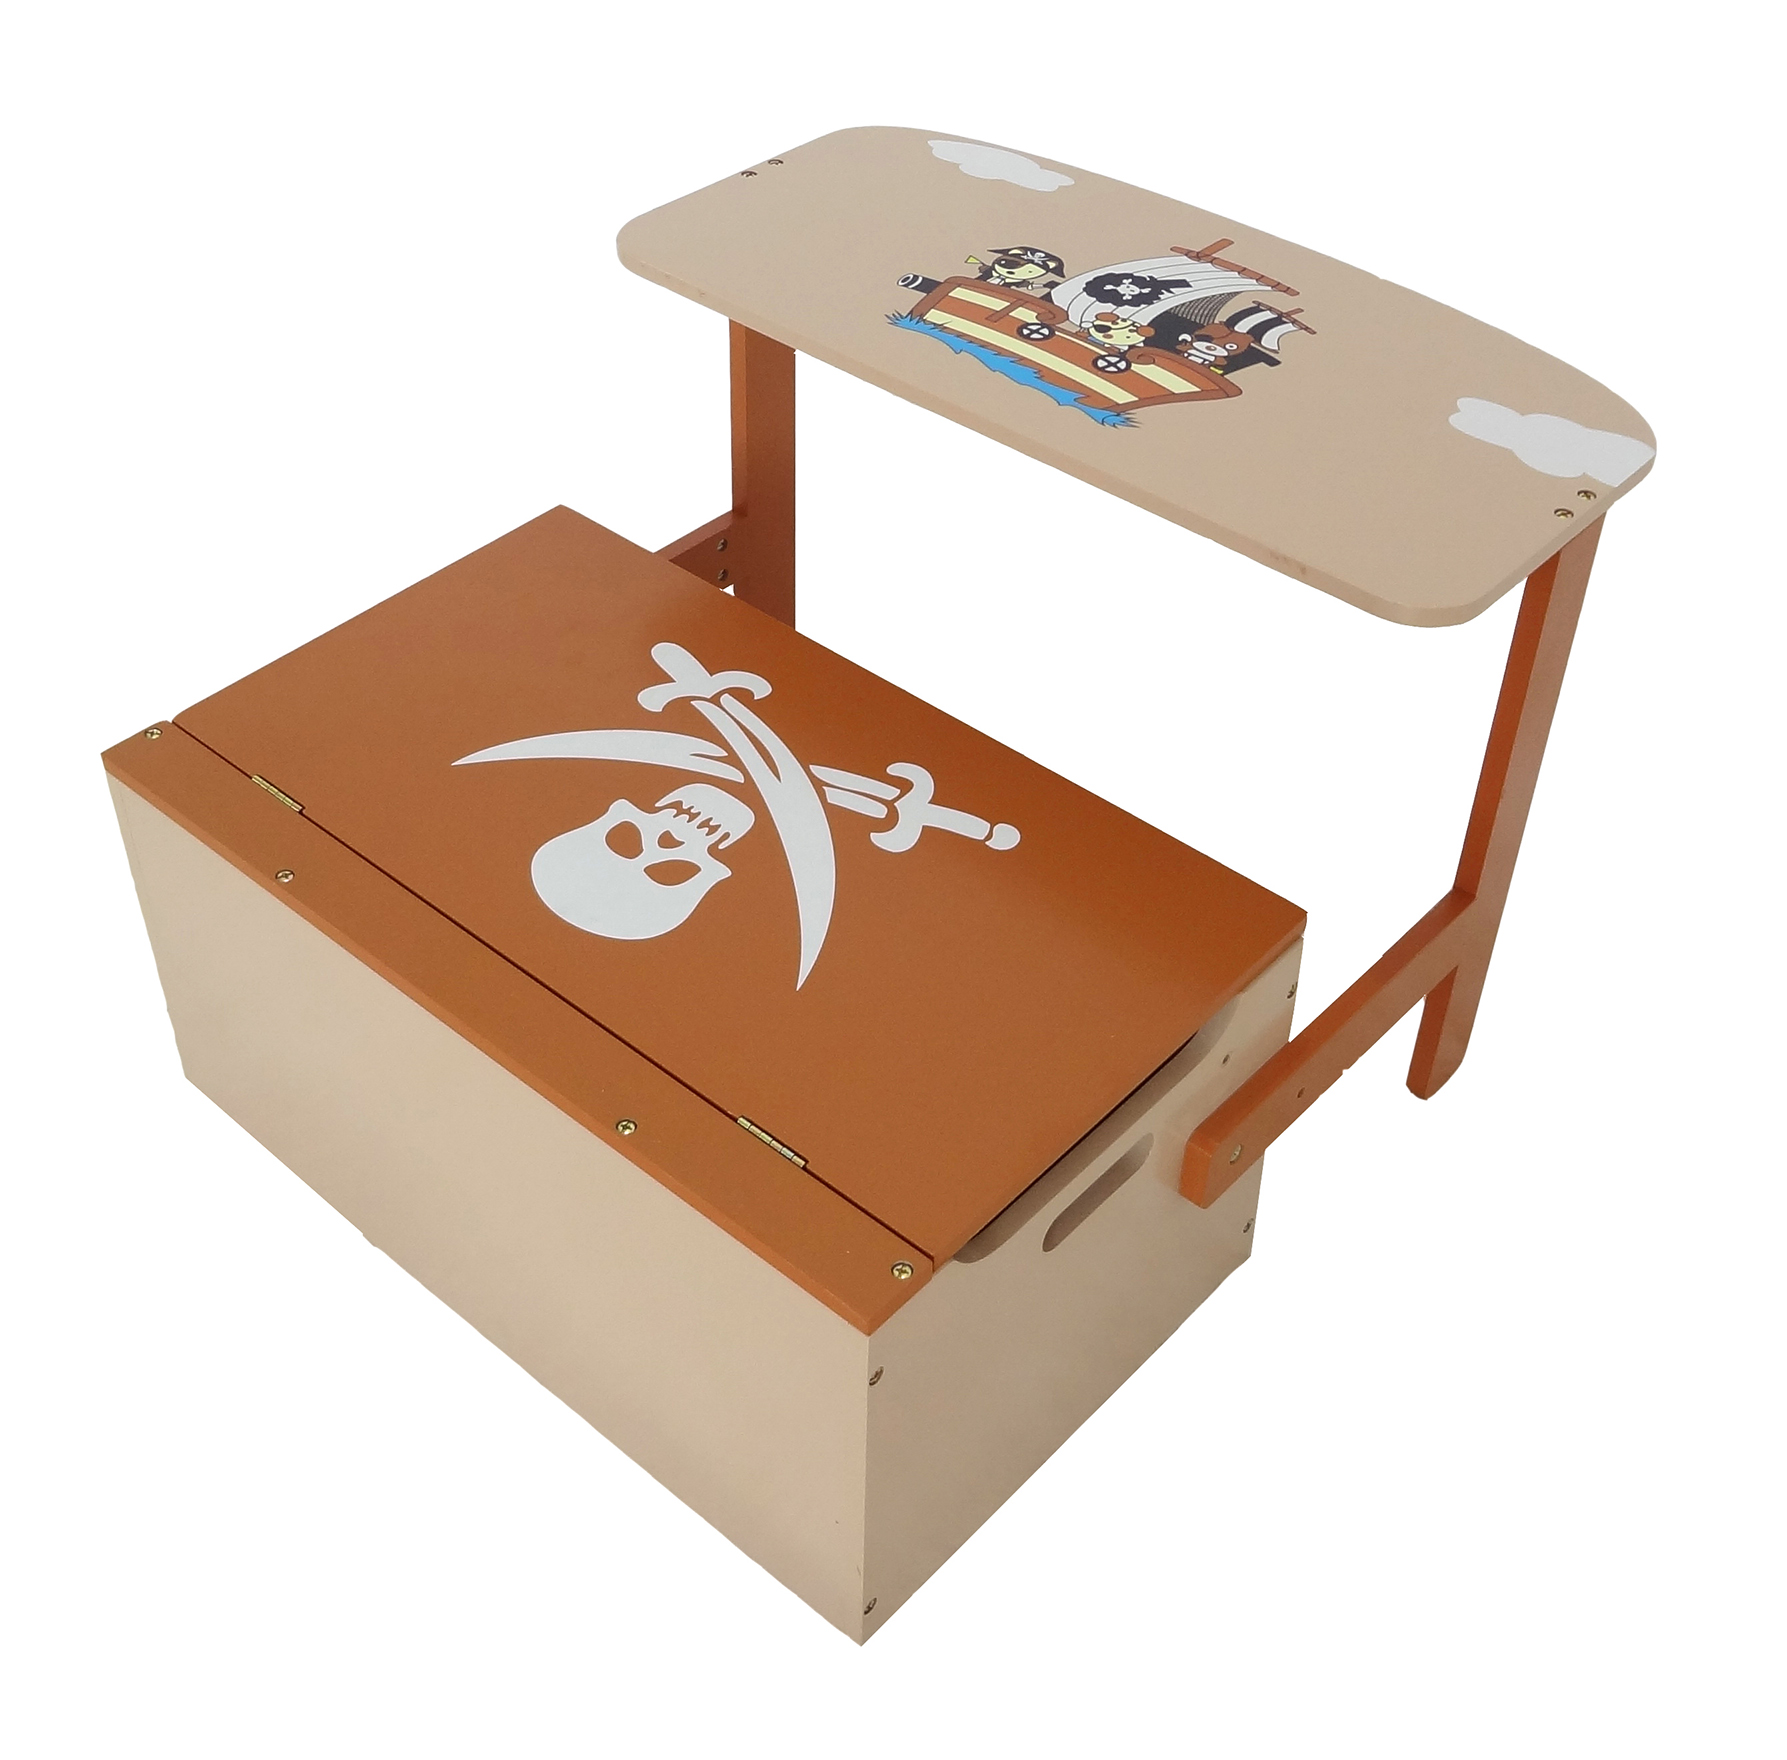 Kiddi Style Convertible Toy Box Bench Amp Table Chair